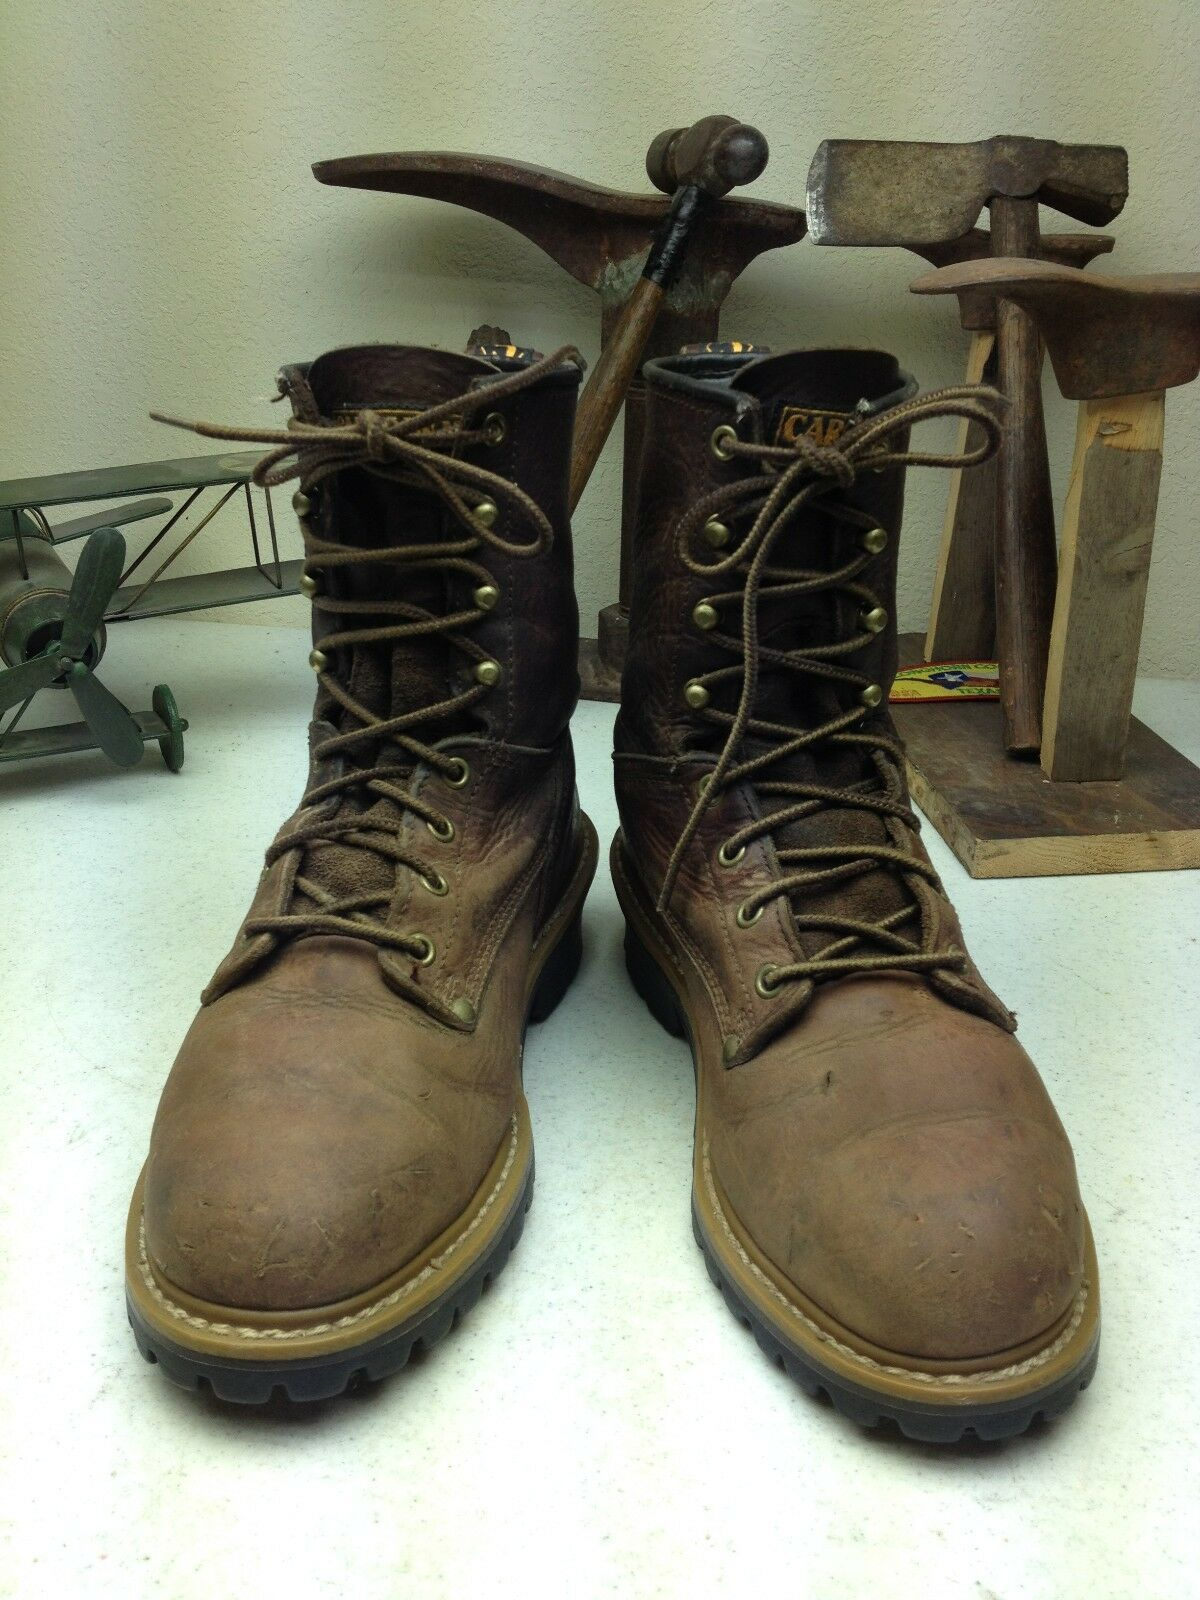 BROWN DISTRESSED CAROLINA PACKER LOGGER LEATHER LACE UP PACKER CAROLINA TRUCKER WORK BOOTS 8 4E a39be3